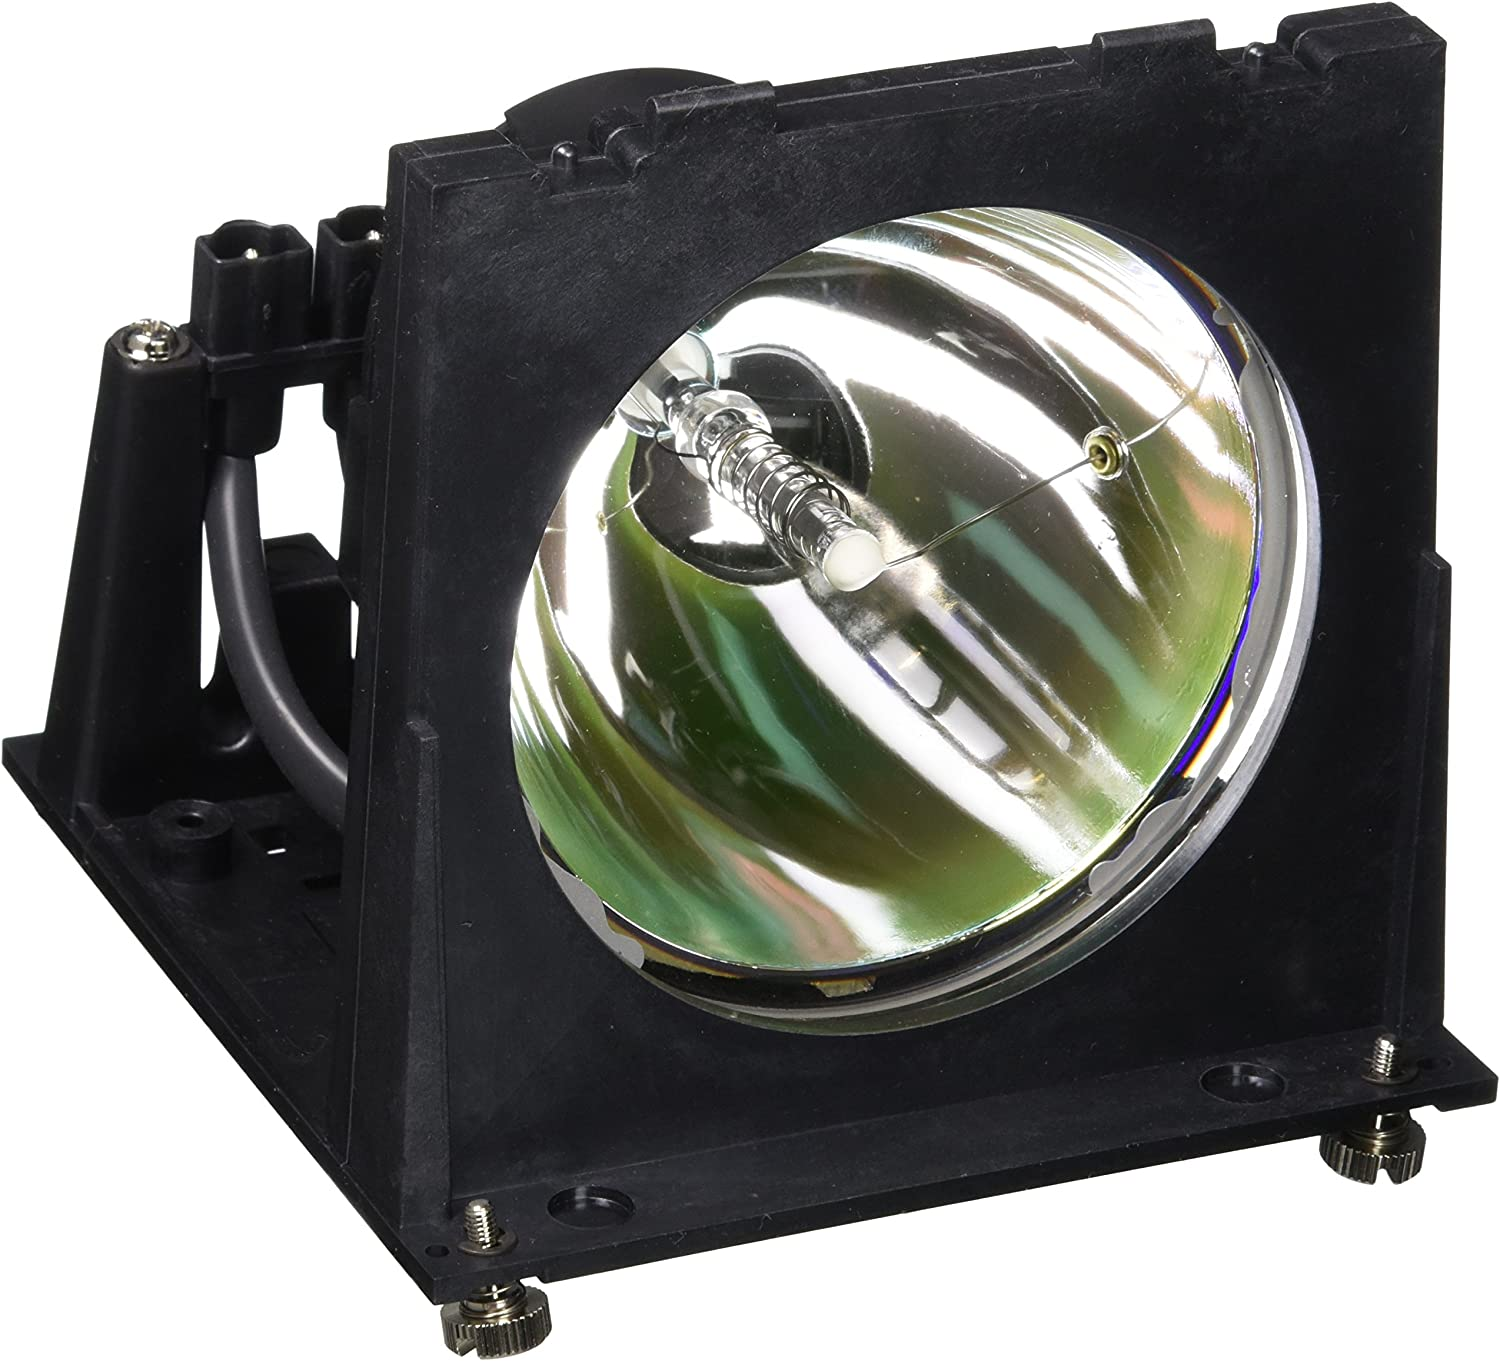 Duogreen Mitsubishi 915P049010 Projection TV Lamp for WD-52631 WD-65733 WD-57732 WD-65732 WD-y65 WD-57731 WD-y57 WD-65731 WD-65734